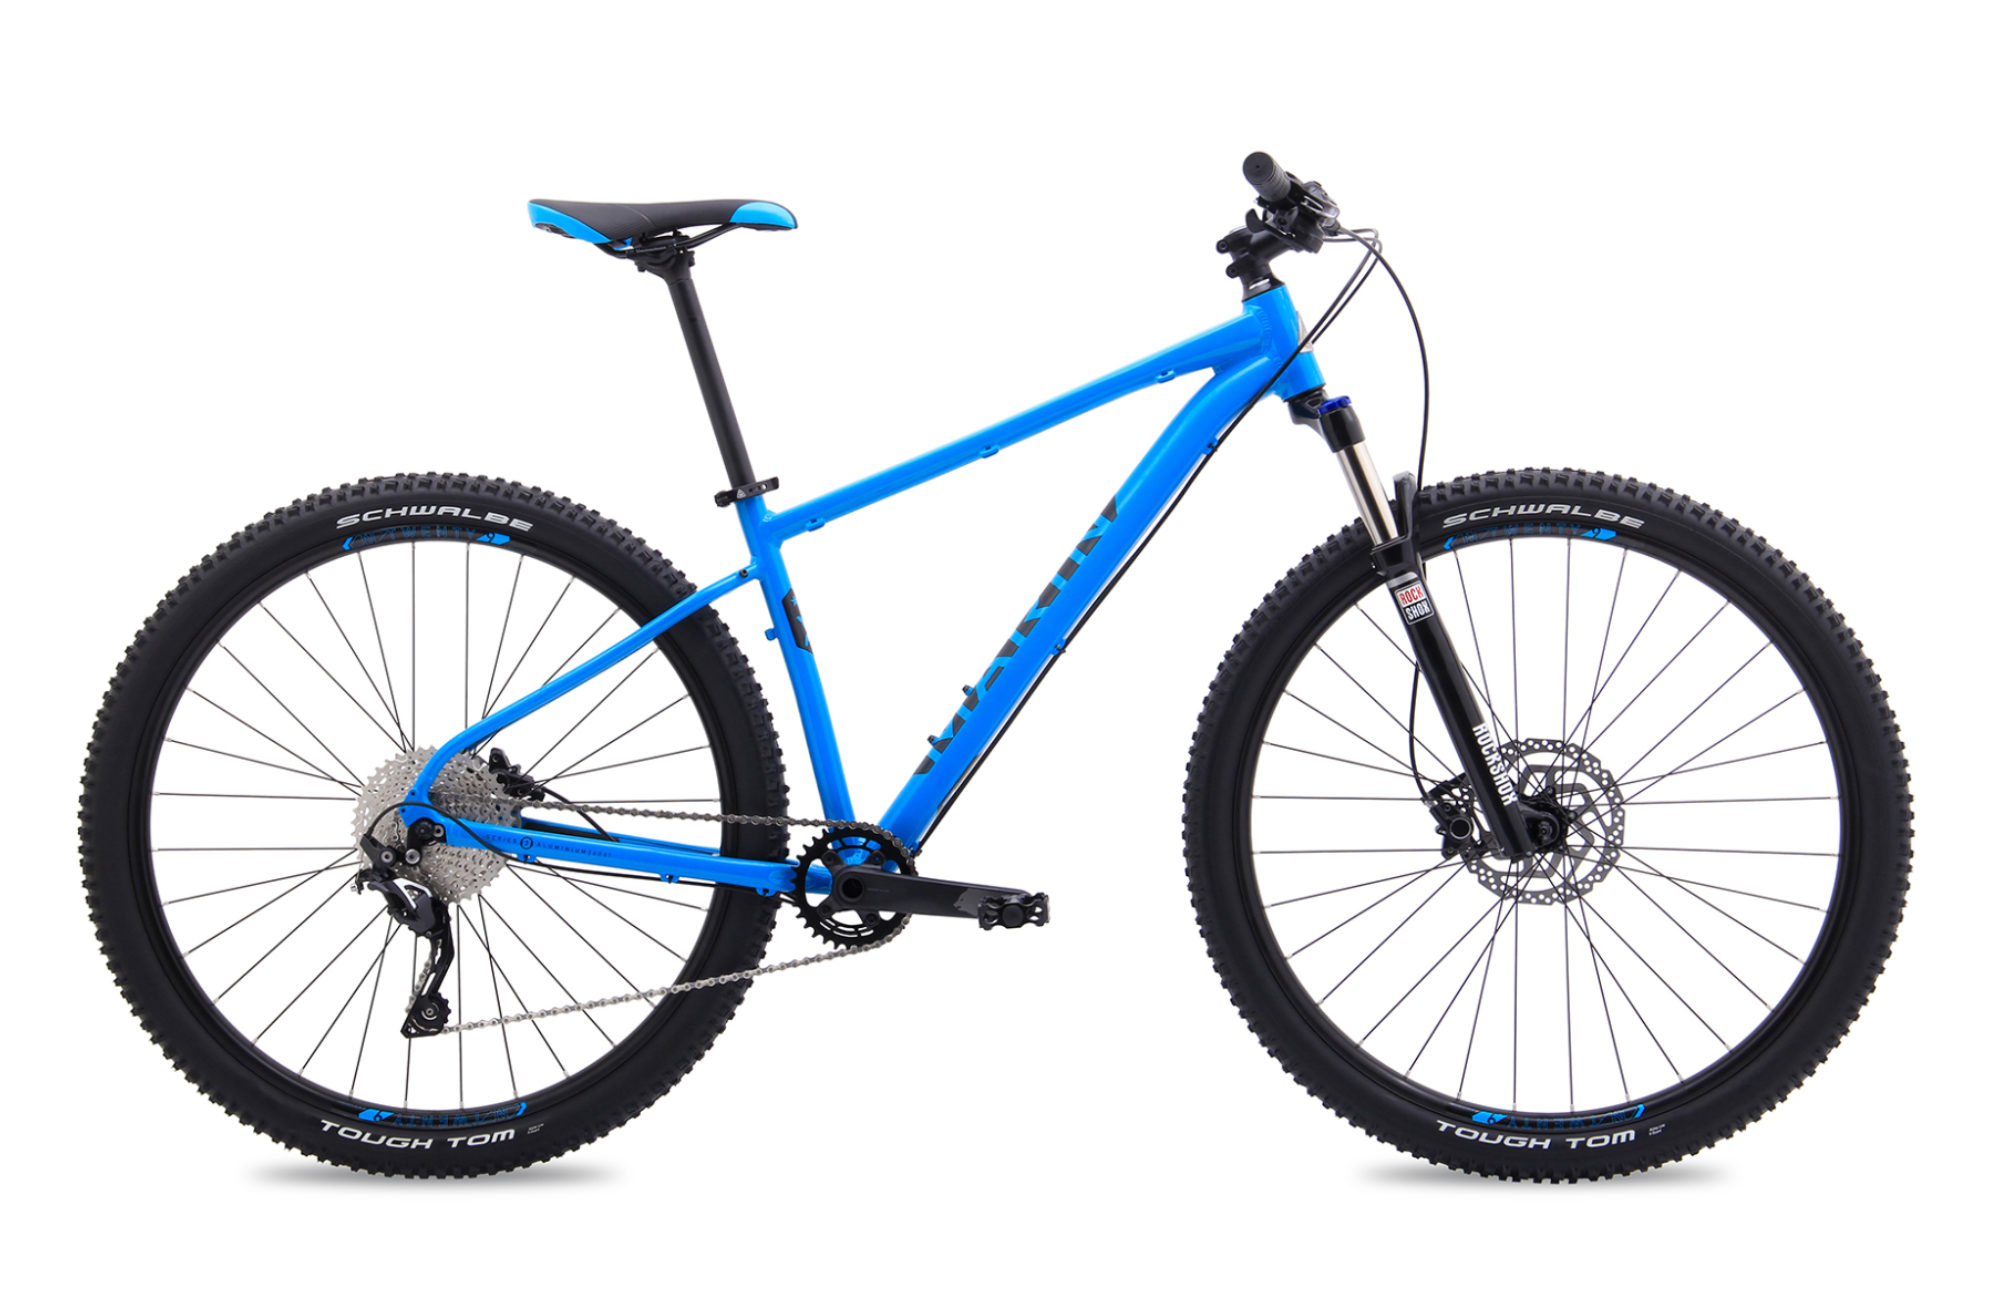 2018 Bobcat Trail 5 27.5″ or 29″ £775